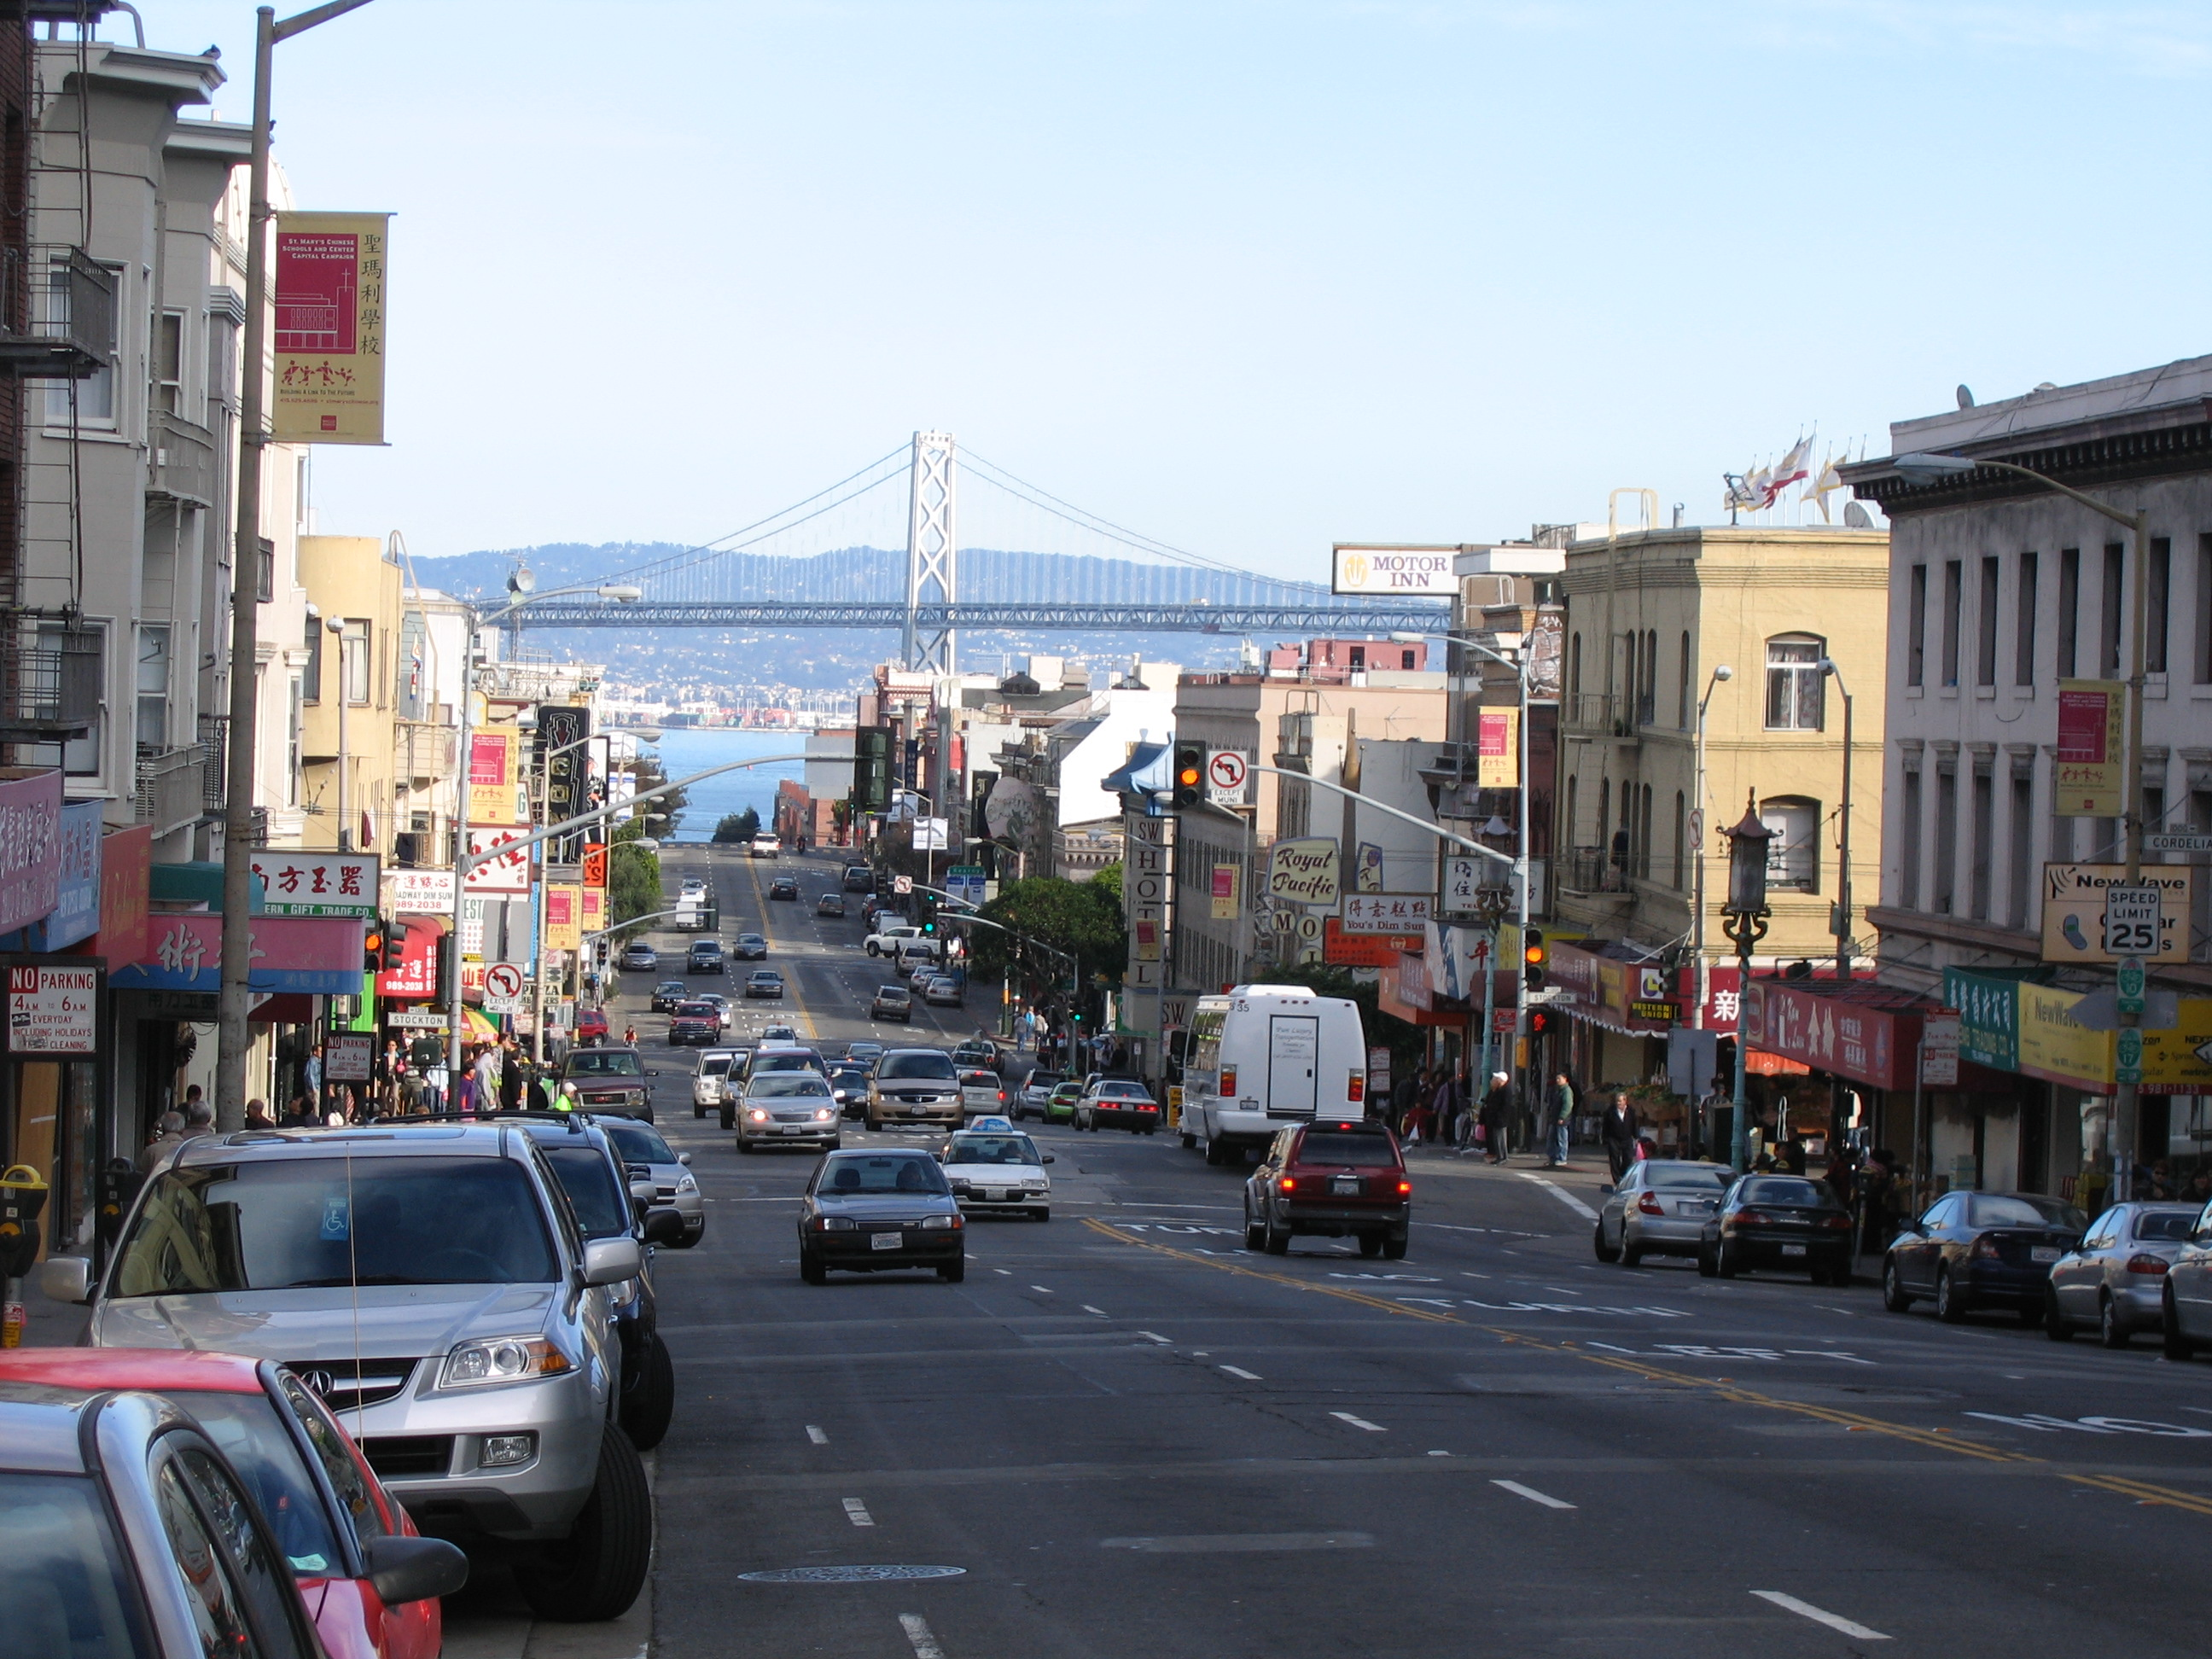 File:View-from-Broadway-street-towards-San-Francisco-Oakland ...